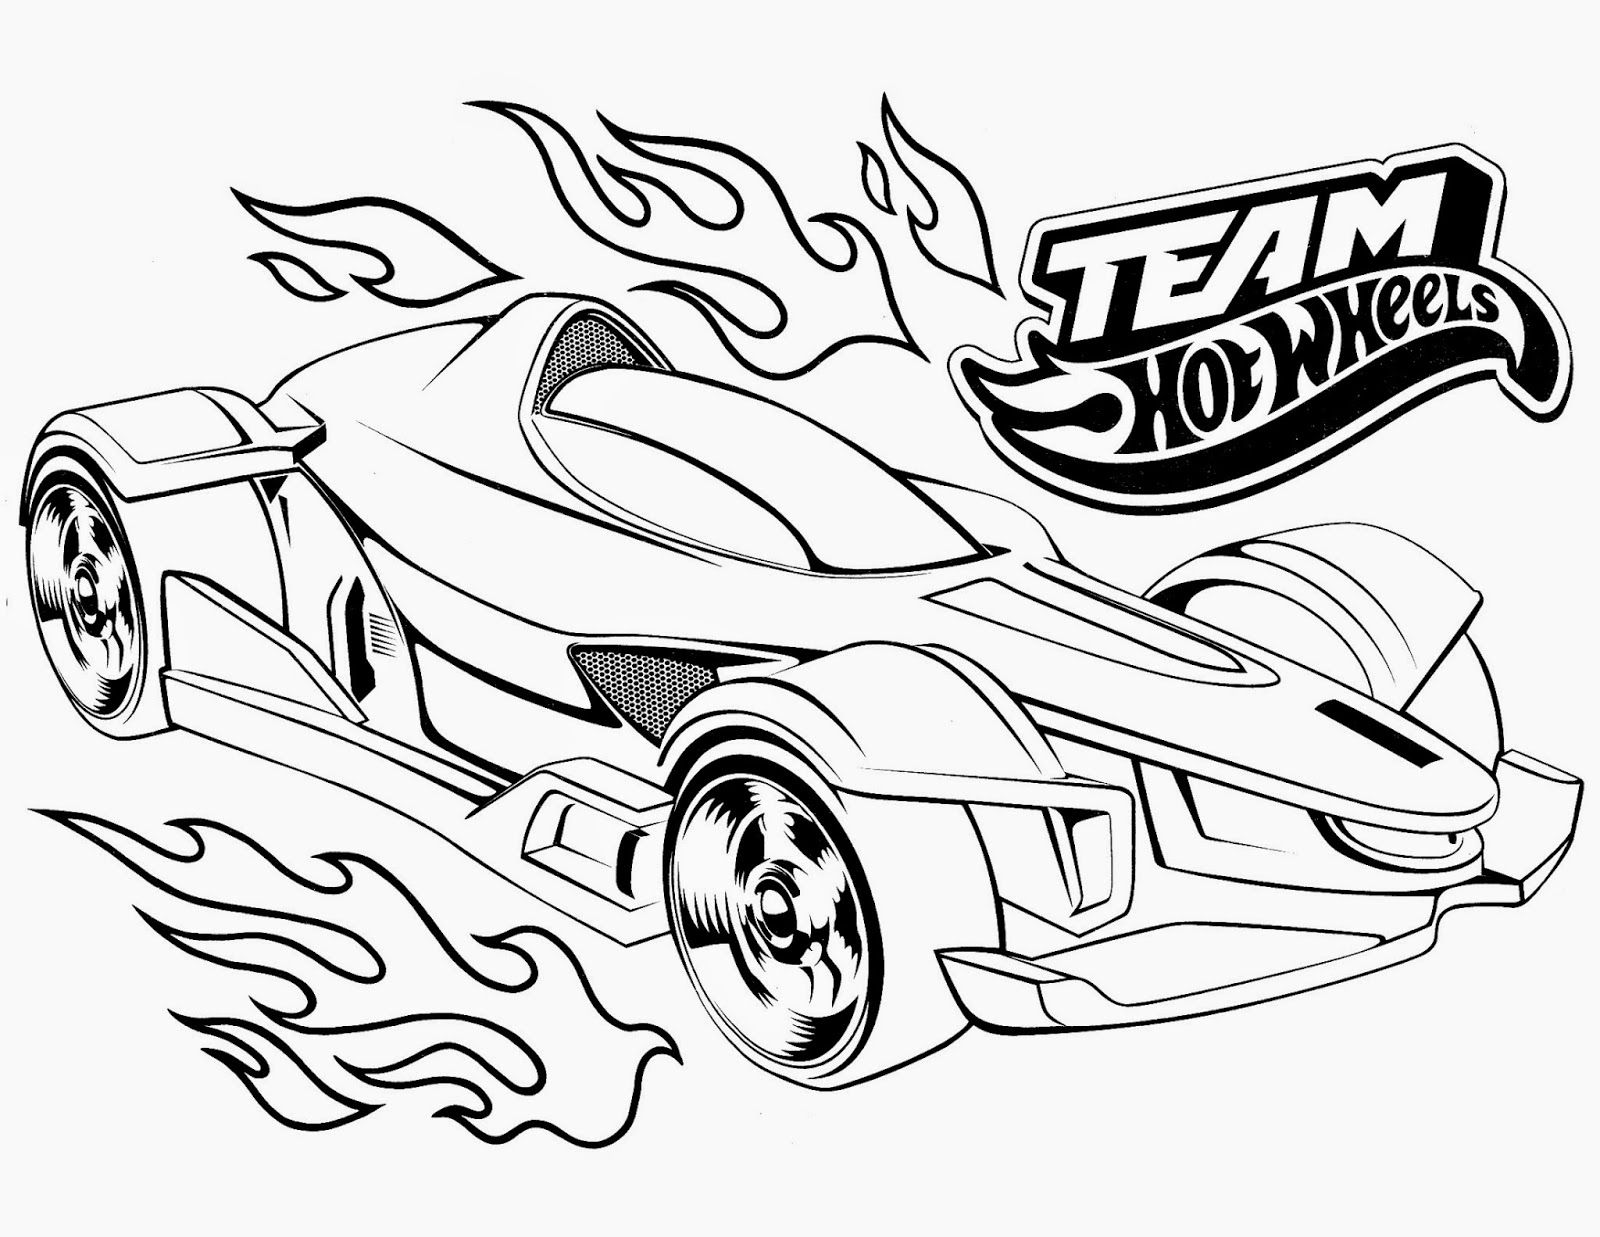 Matchbox Cars Coloring Pages - Coloring Home